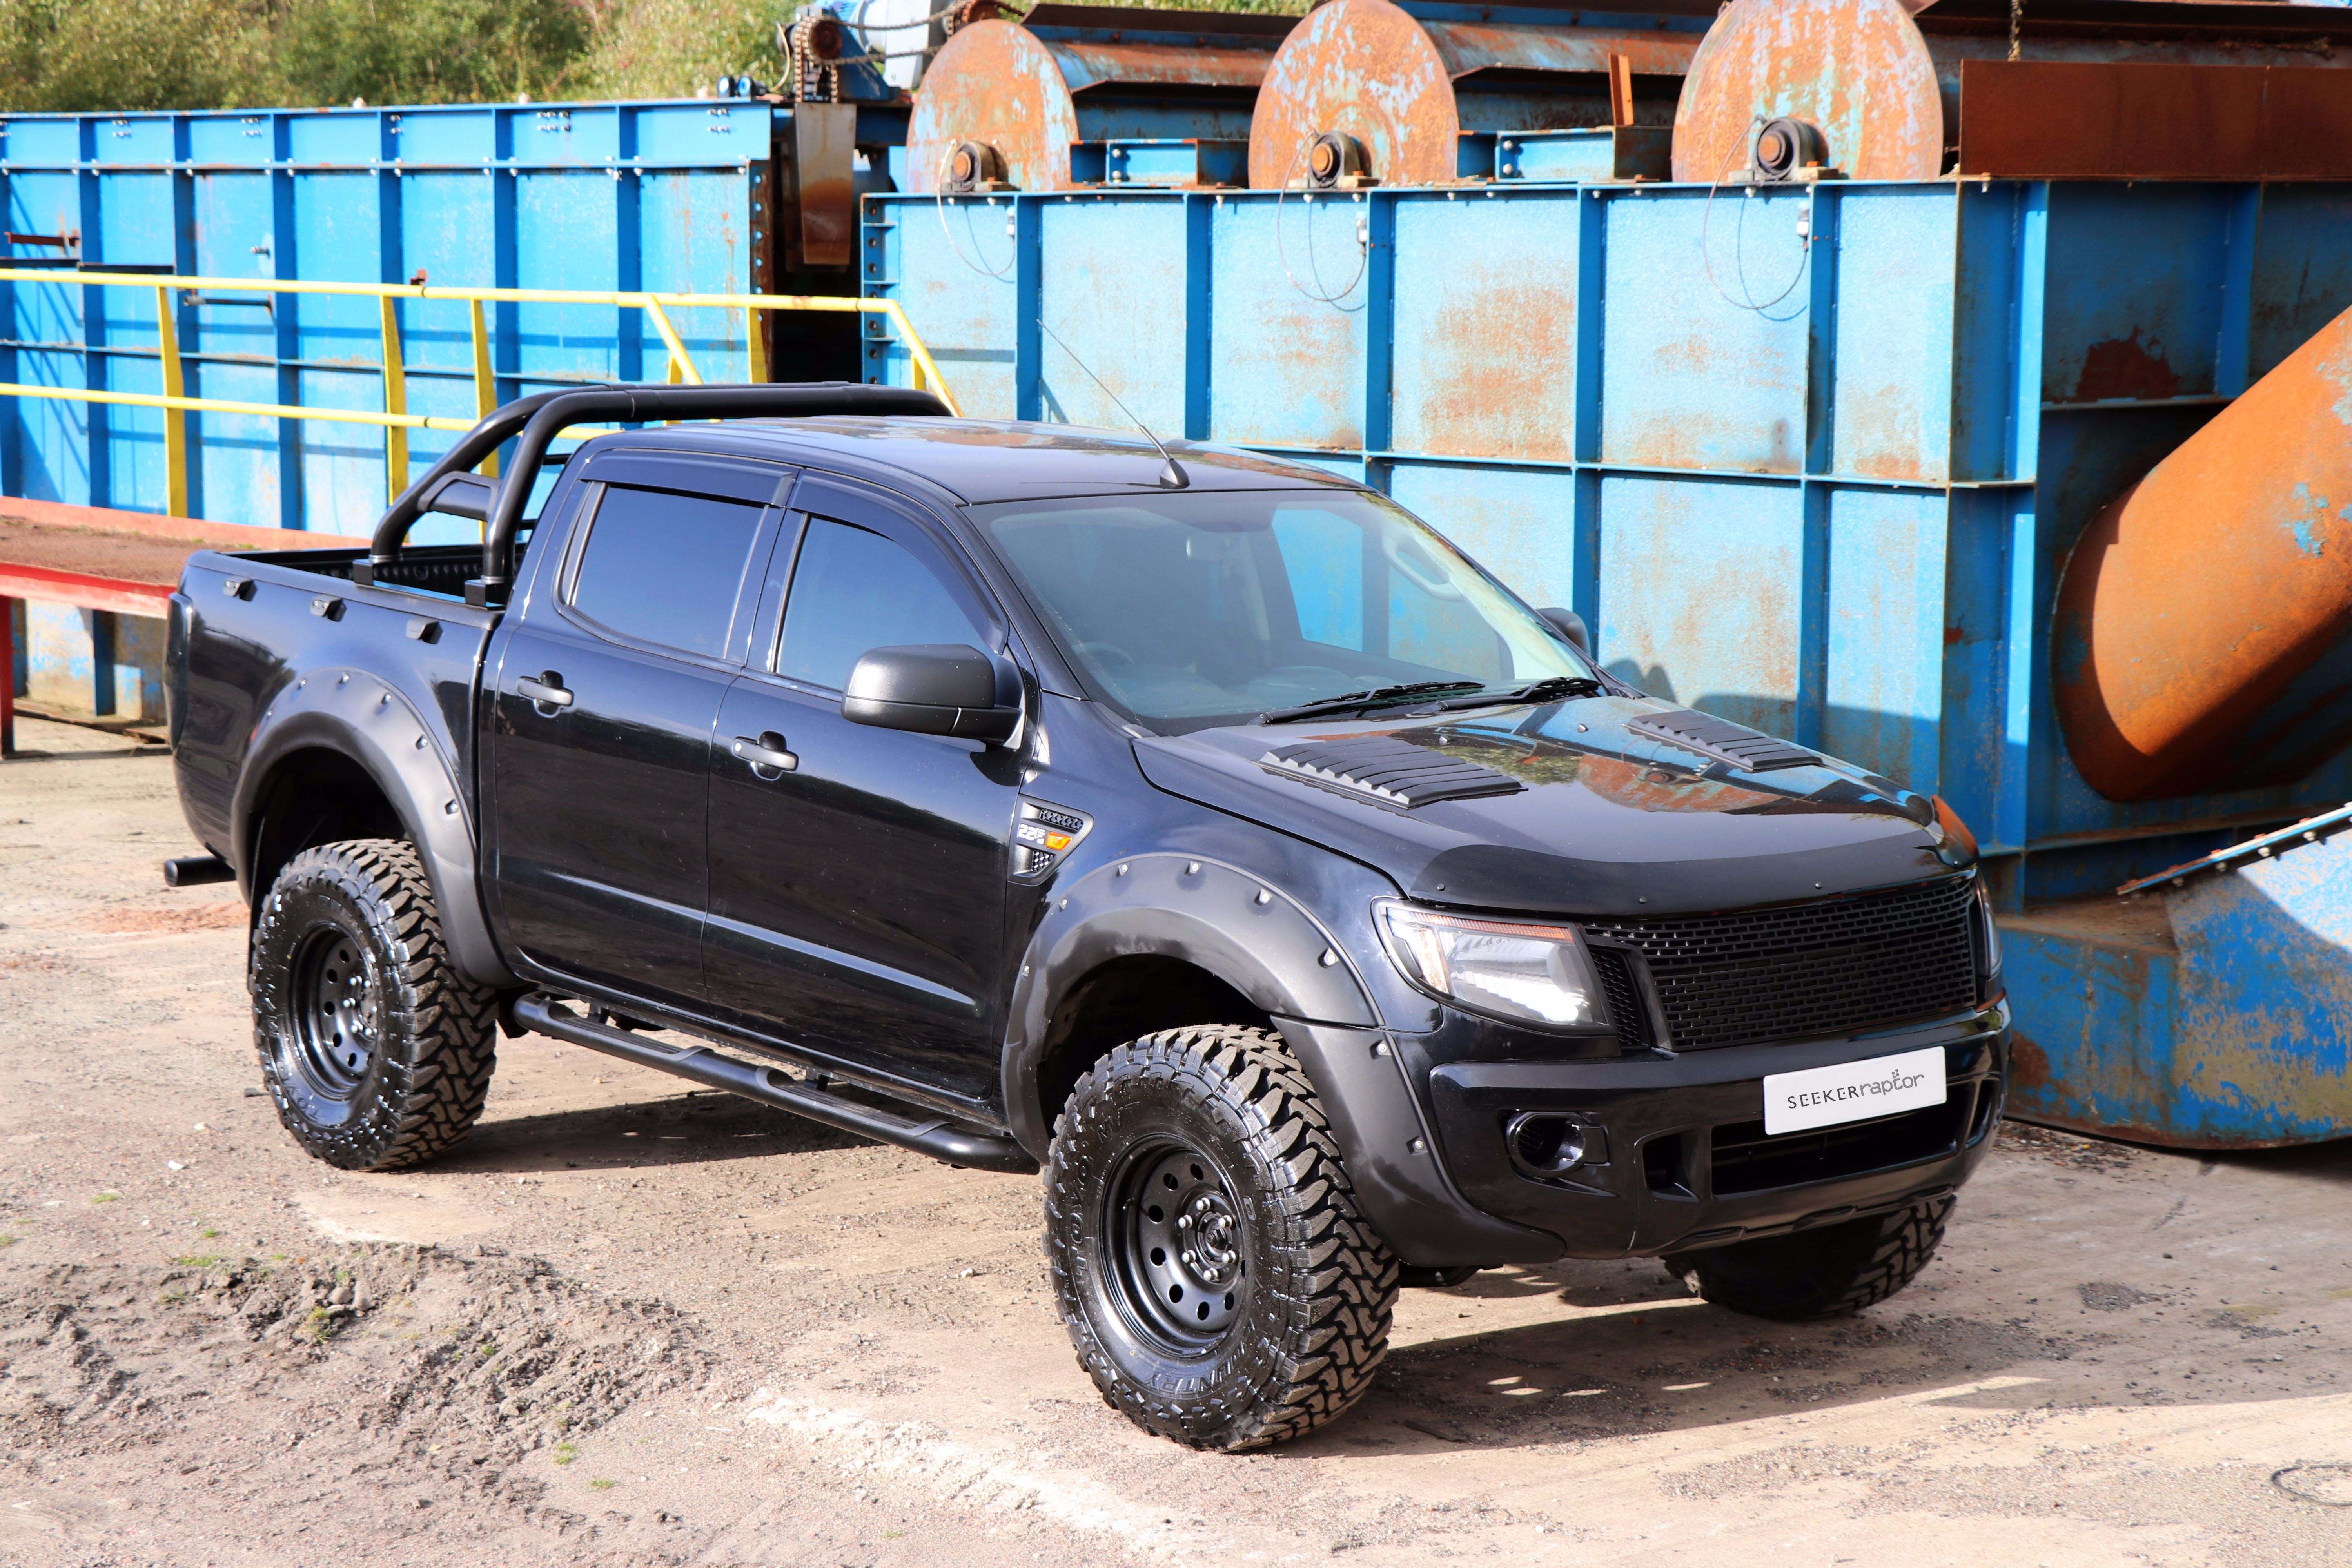 ford ranger seeker raptor all black edition now launched motorseeker uk chesterfield. Black Bedroom Furniture Sets. Home Design Ideas